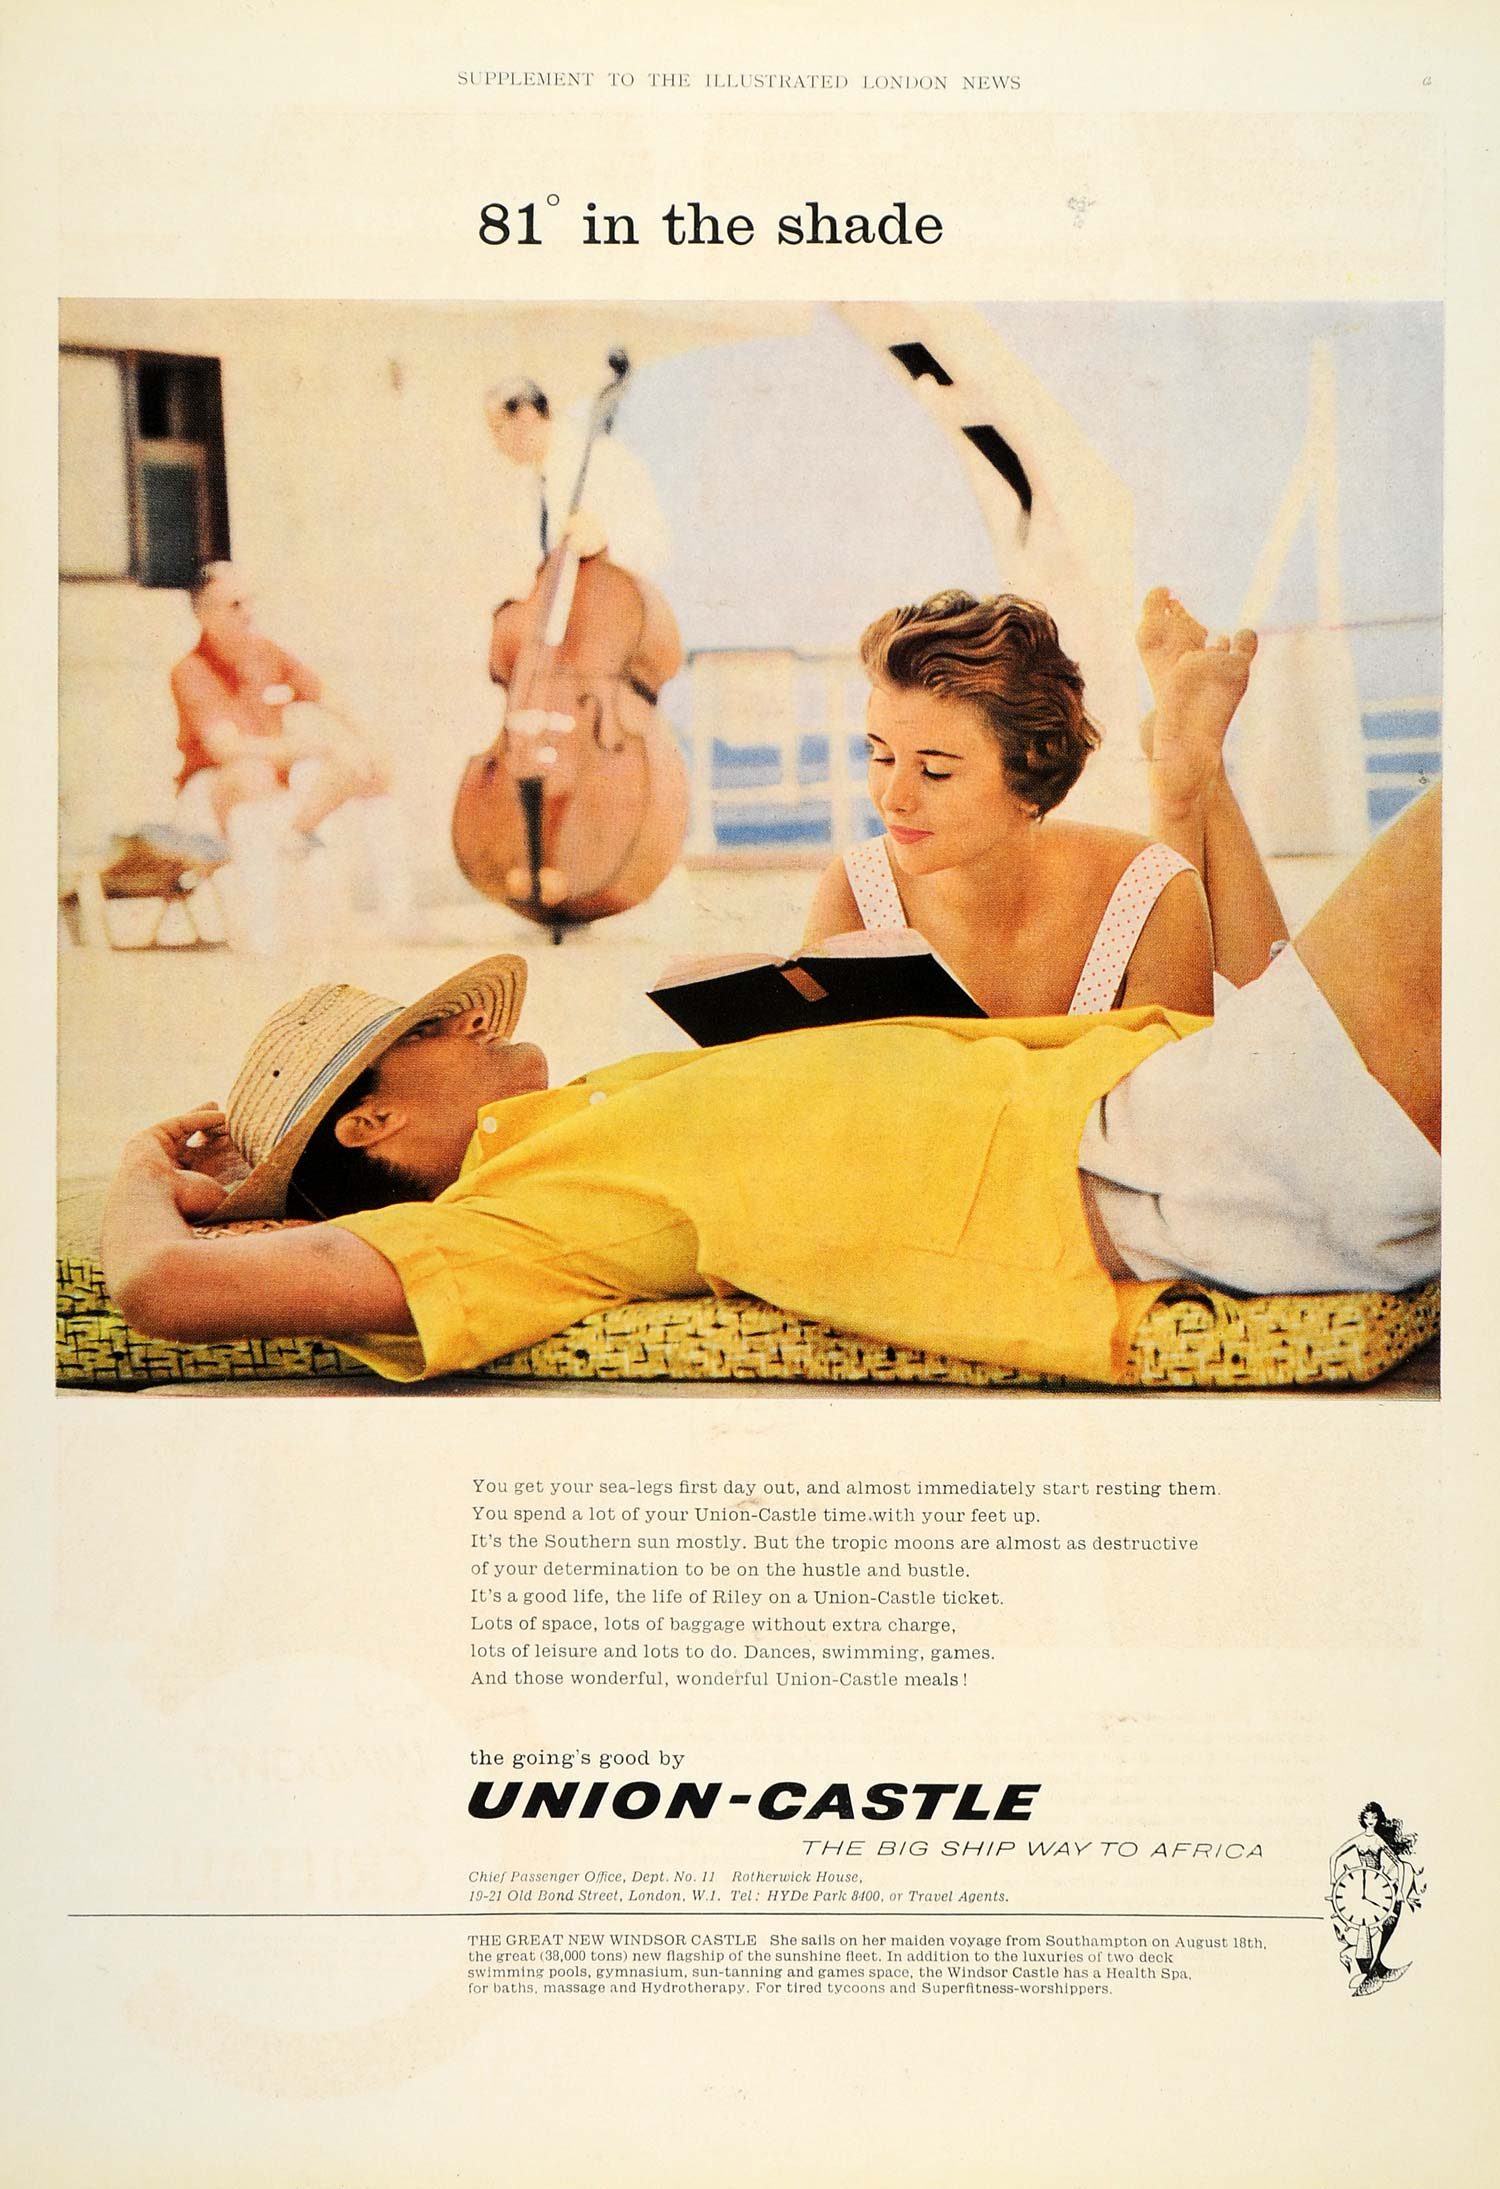 1960 Ad Union-Castle Line Ship Travel Africa Passengers - ORIGINAL LN1